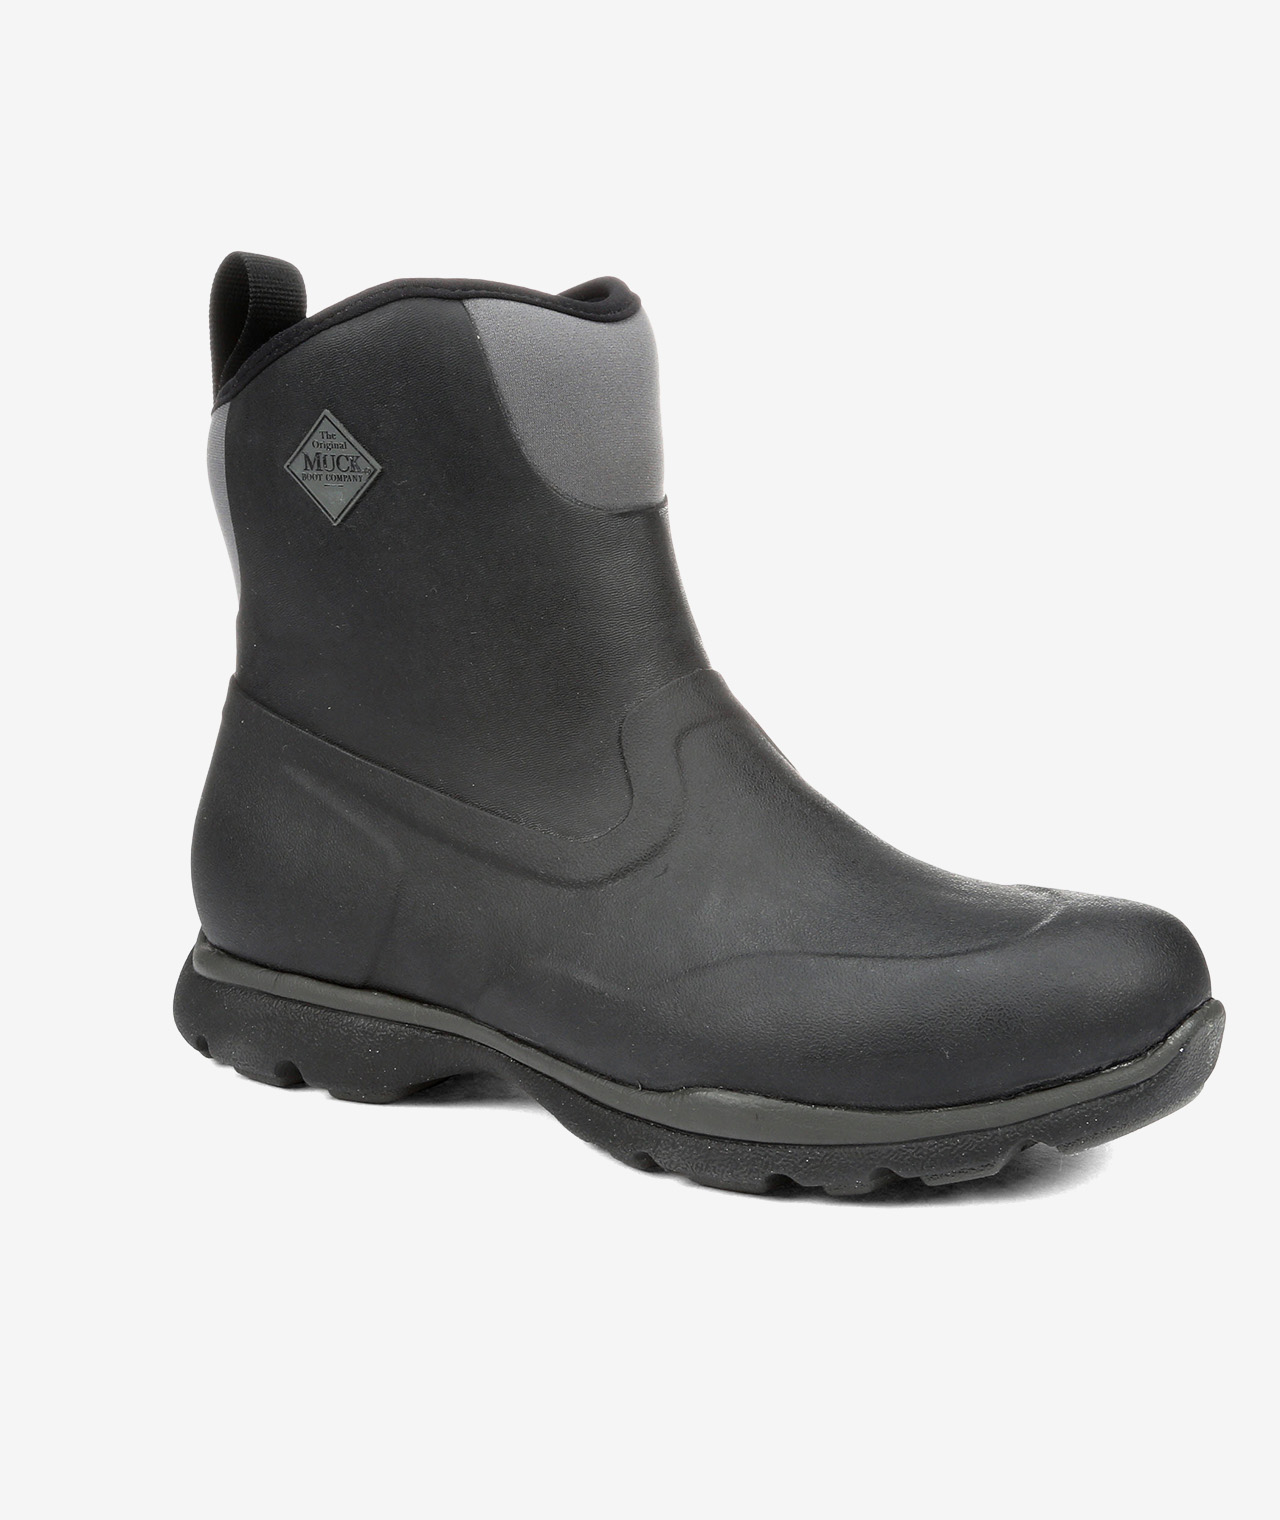 Muck Boot Unisex Excursion Pro Mid Outdoor Gumboot